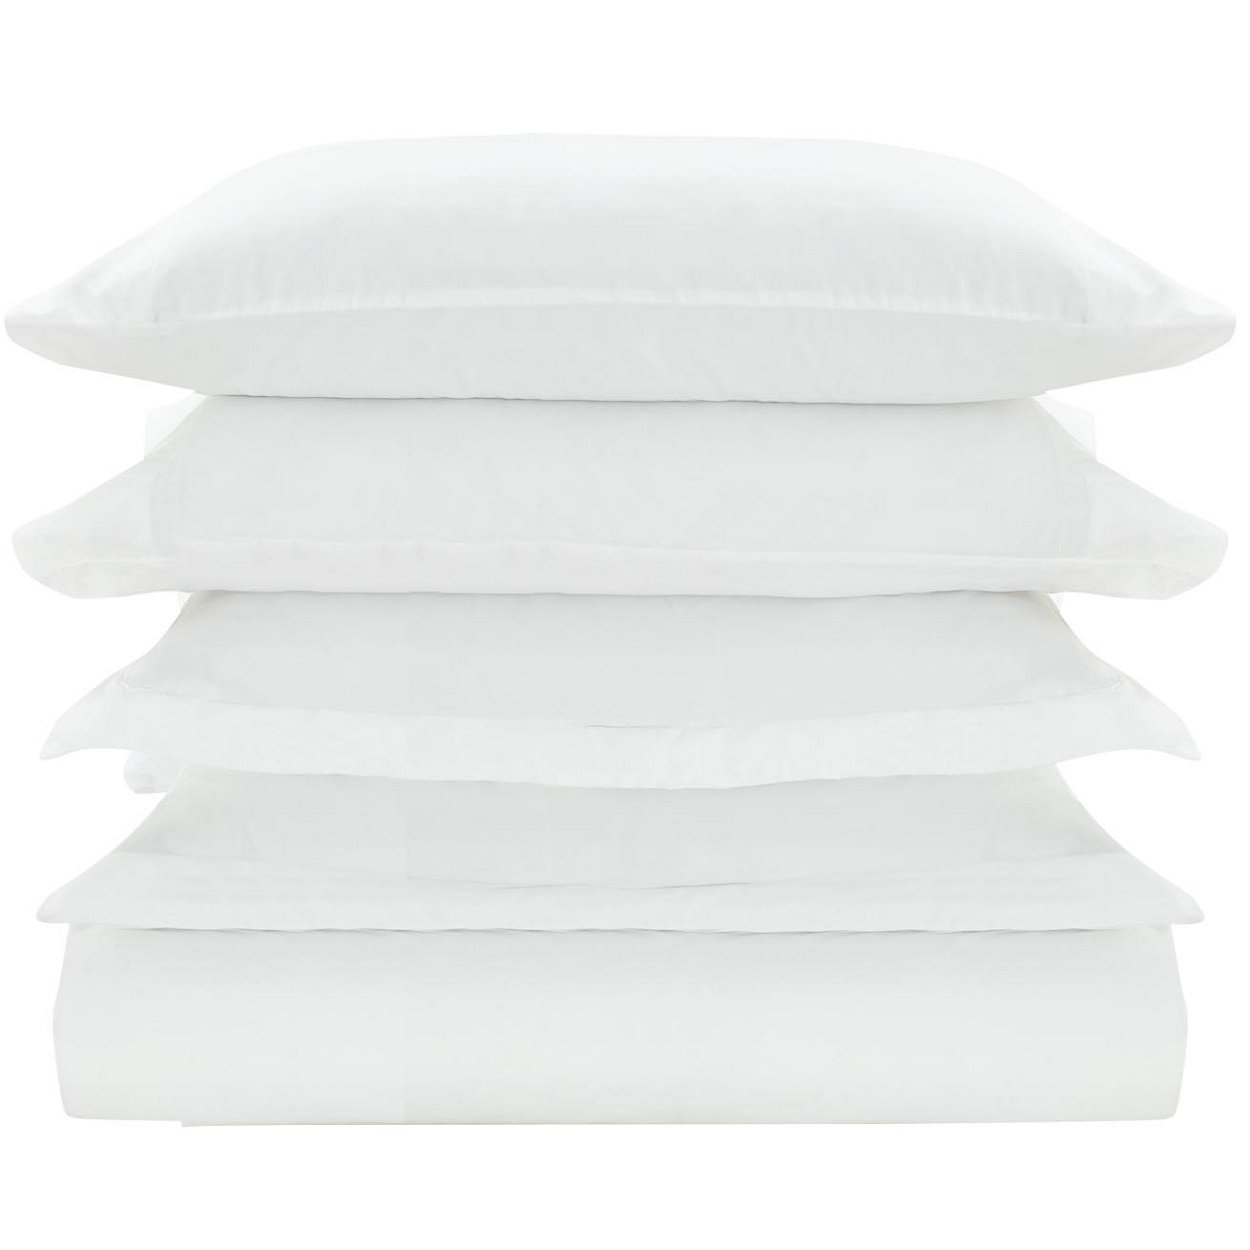 Mellanni Duvet Cover Set White - Double Brushed Microfiber 1800 Bedding Collection with Extra Pillowcase - Wrinkle, Fade, Stain Resistant - Hypoallergenic - 3 Piece (Twin/Twin XL, White) 818162027038